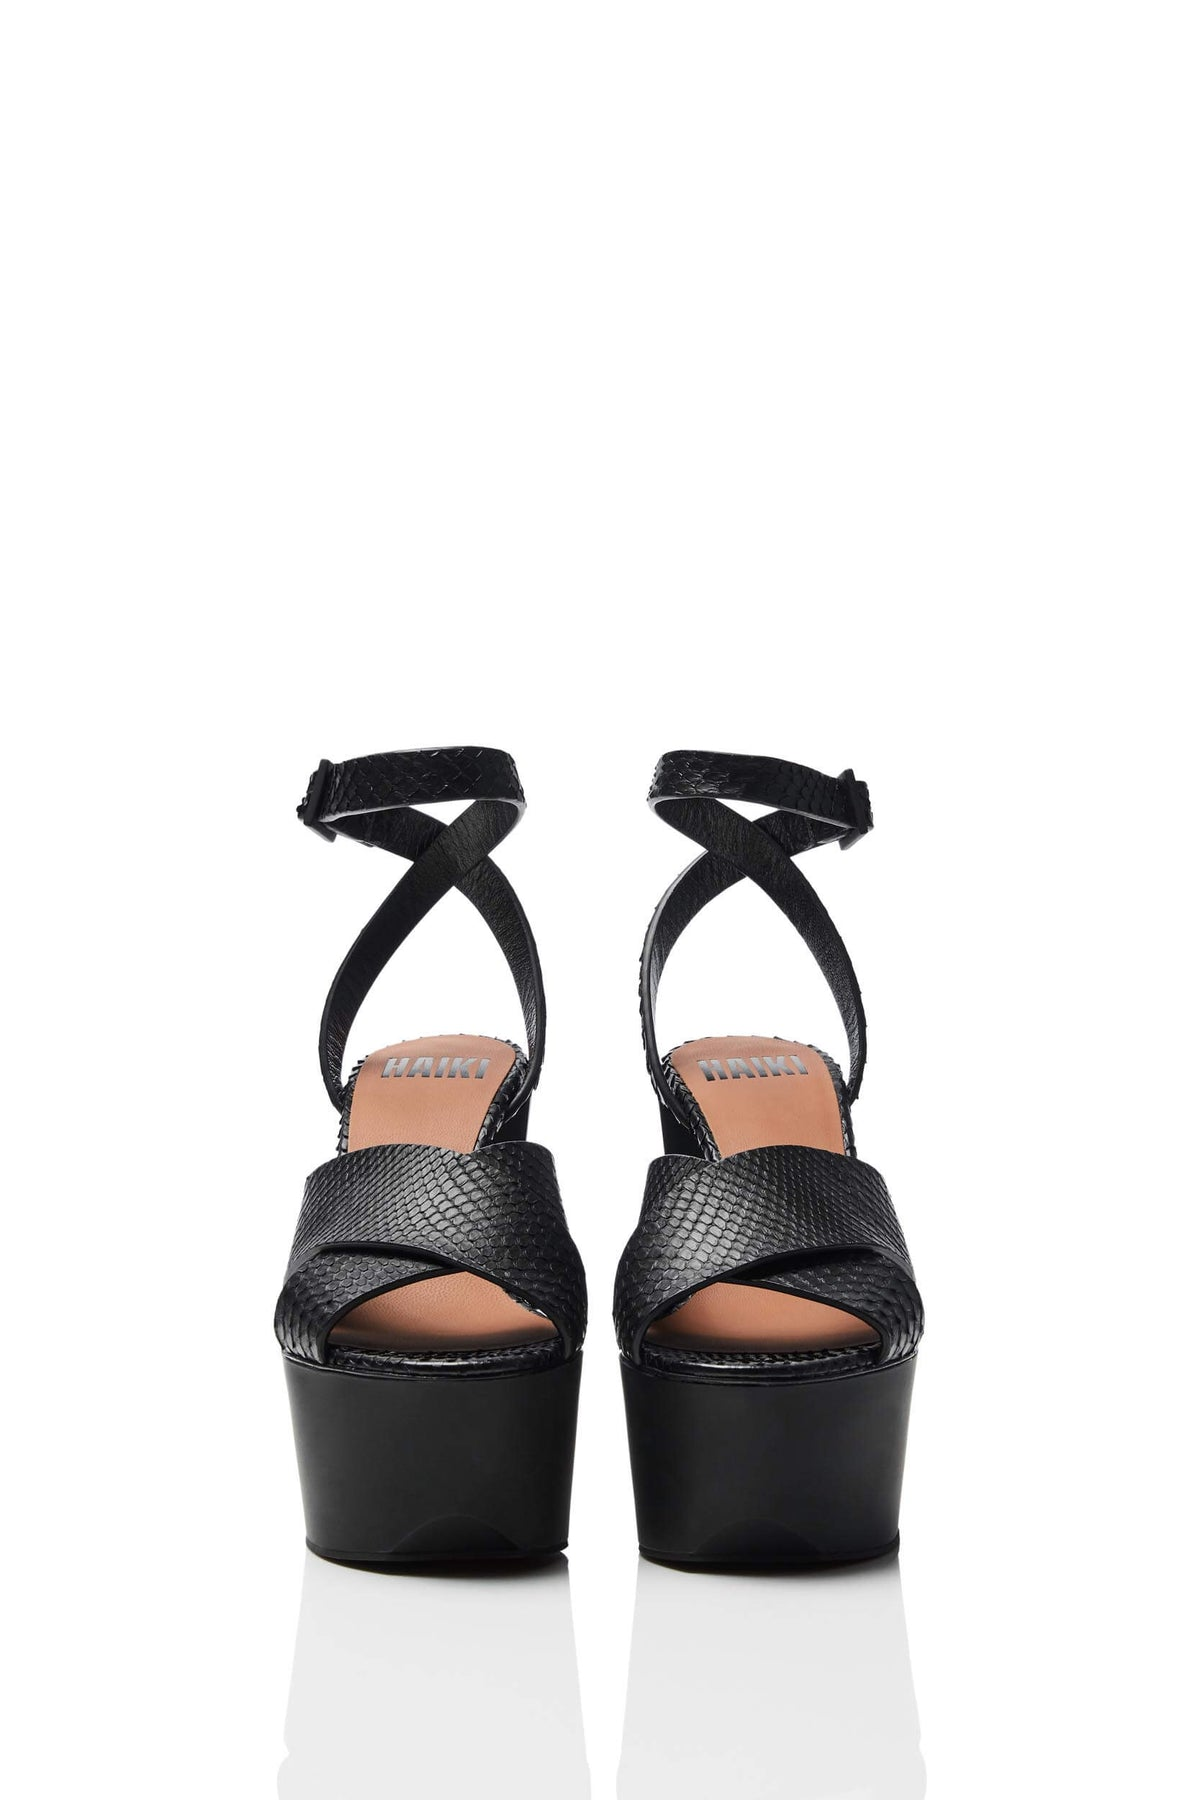 HAIKI 601 - Wide band, crisscross sandal, with self-adjusting ankle strap. Classic Genuine Python with hand-coated edges in black.